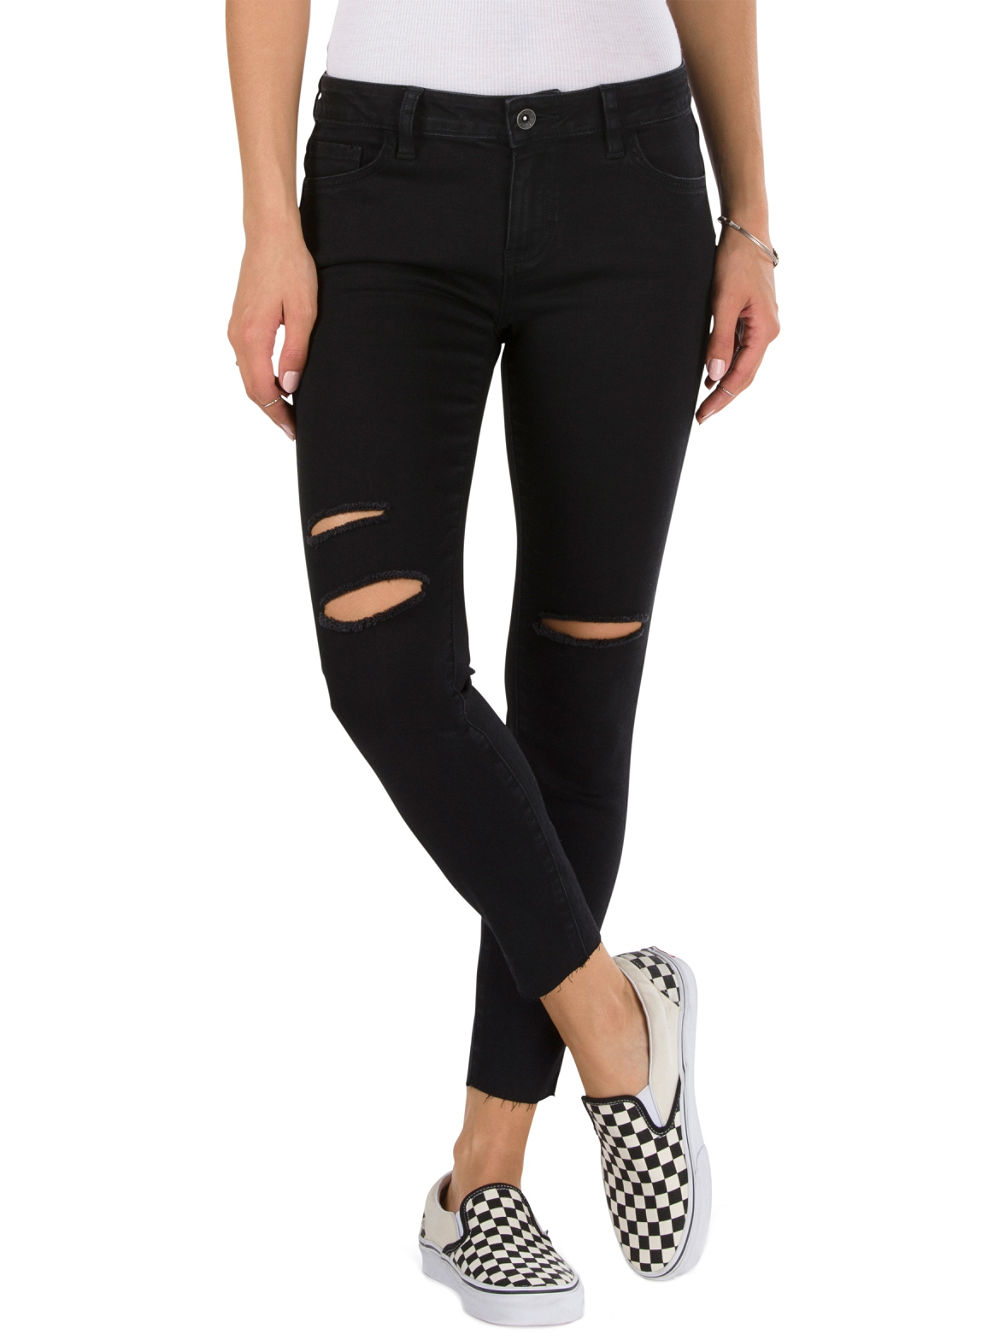 Buy Vans Destructed Skinny Jeans online at blue-tomato.com